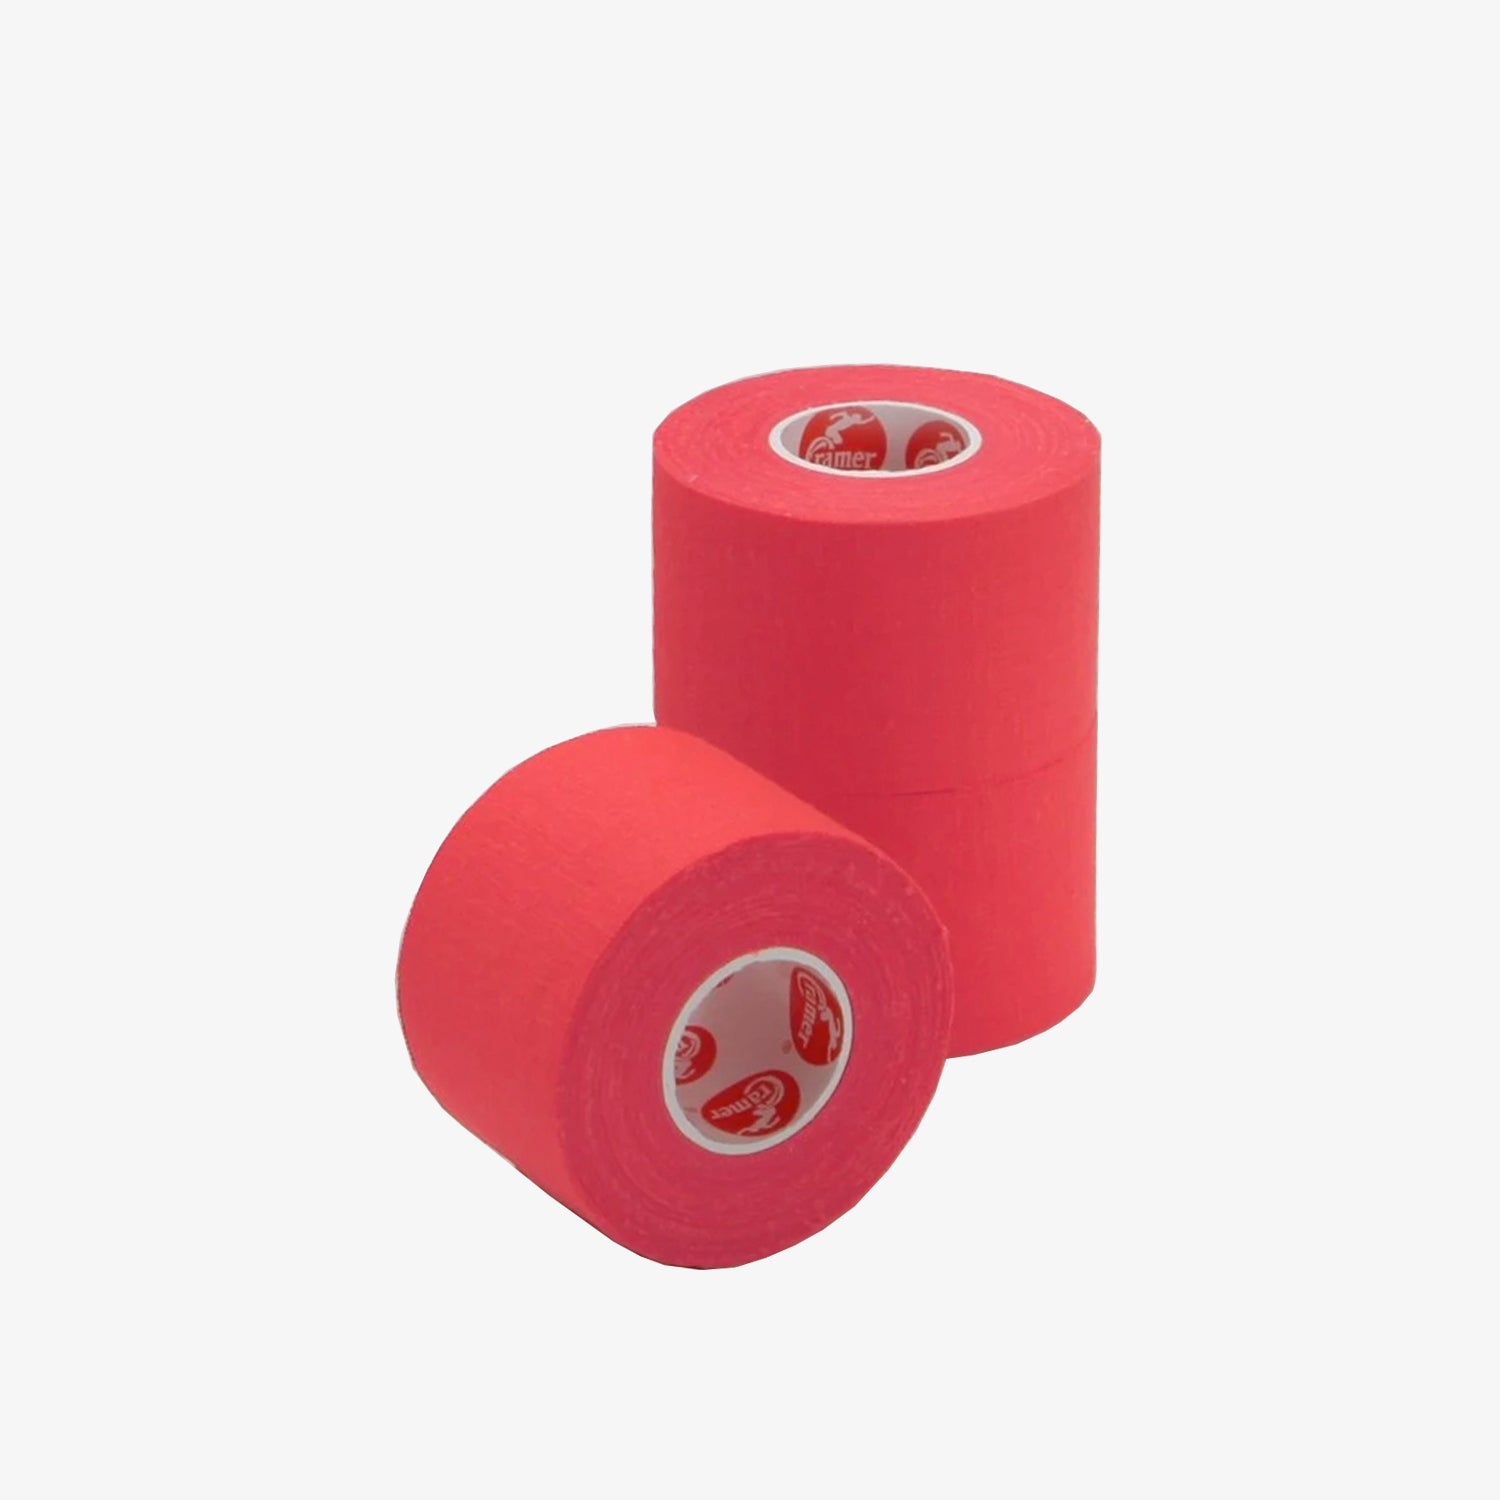 "750 Athletic Trainer Tape Pink - 1.5"" (1 Roll)"